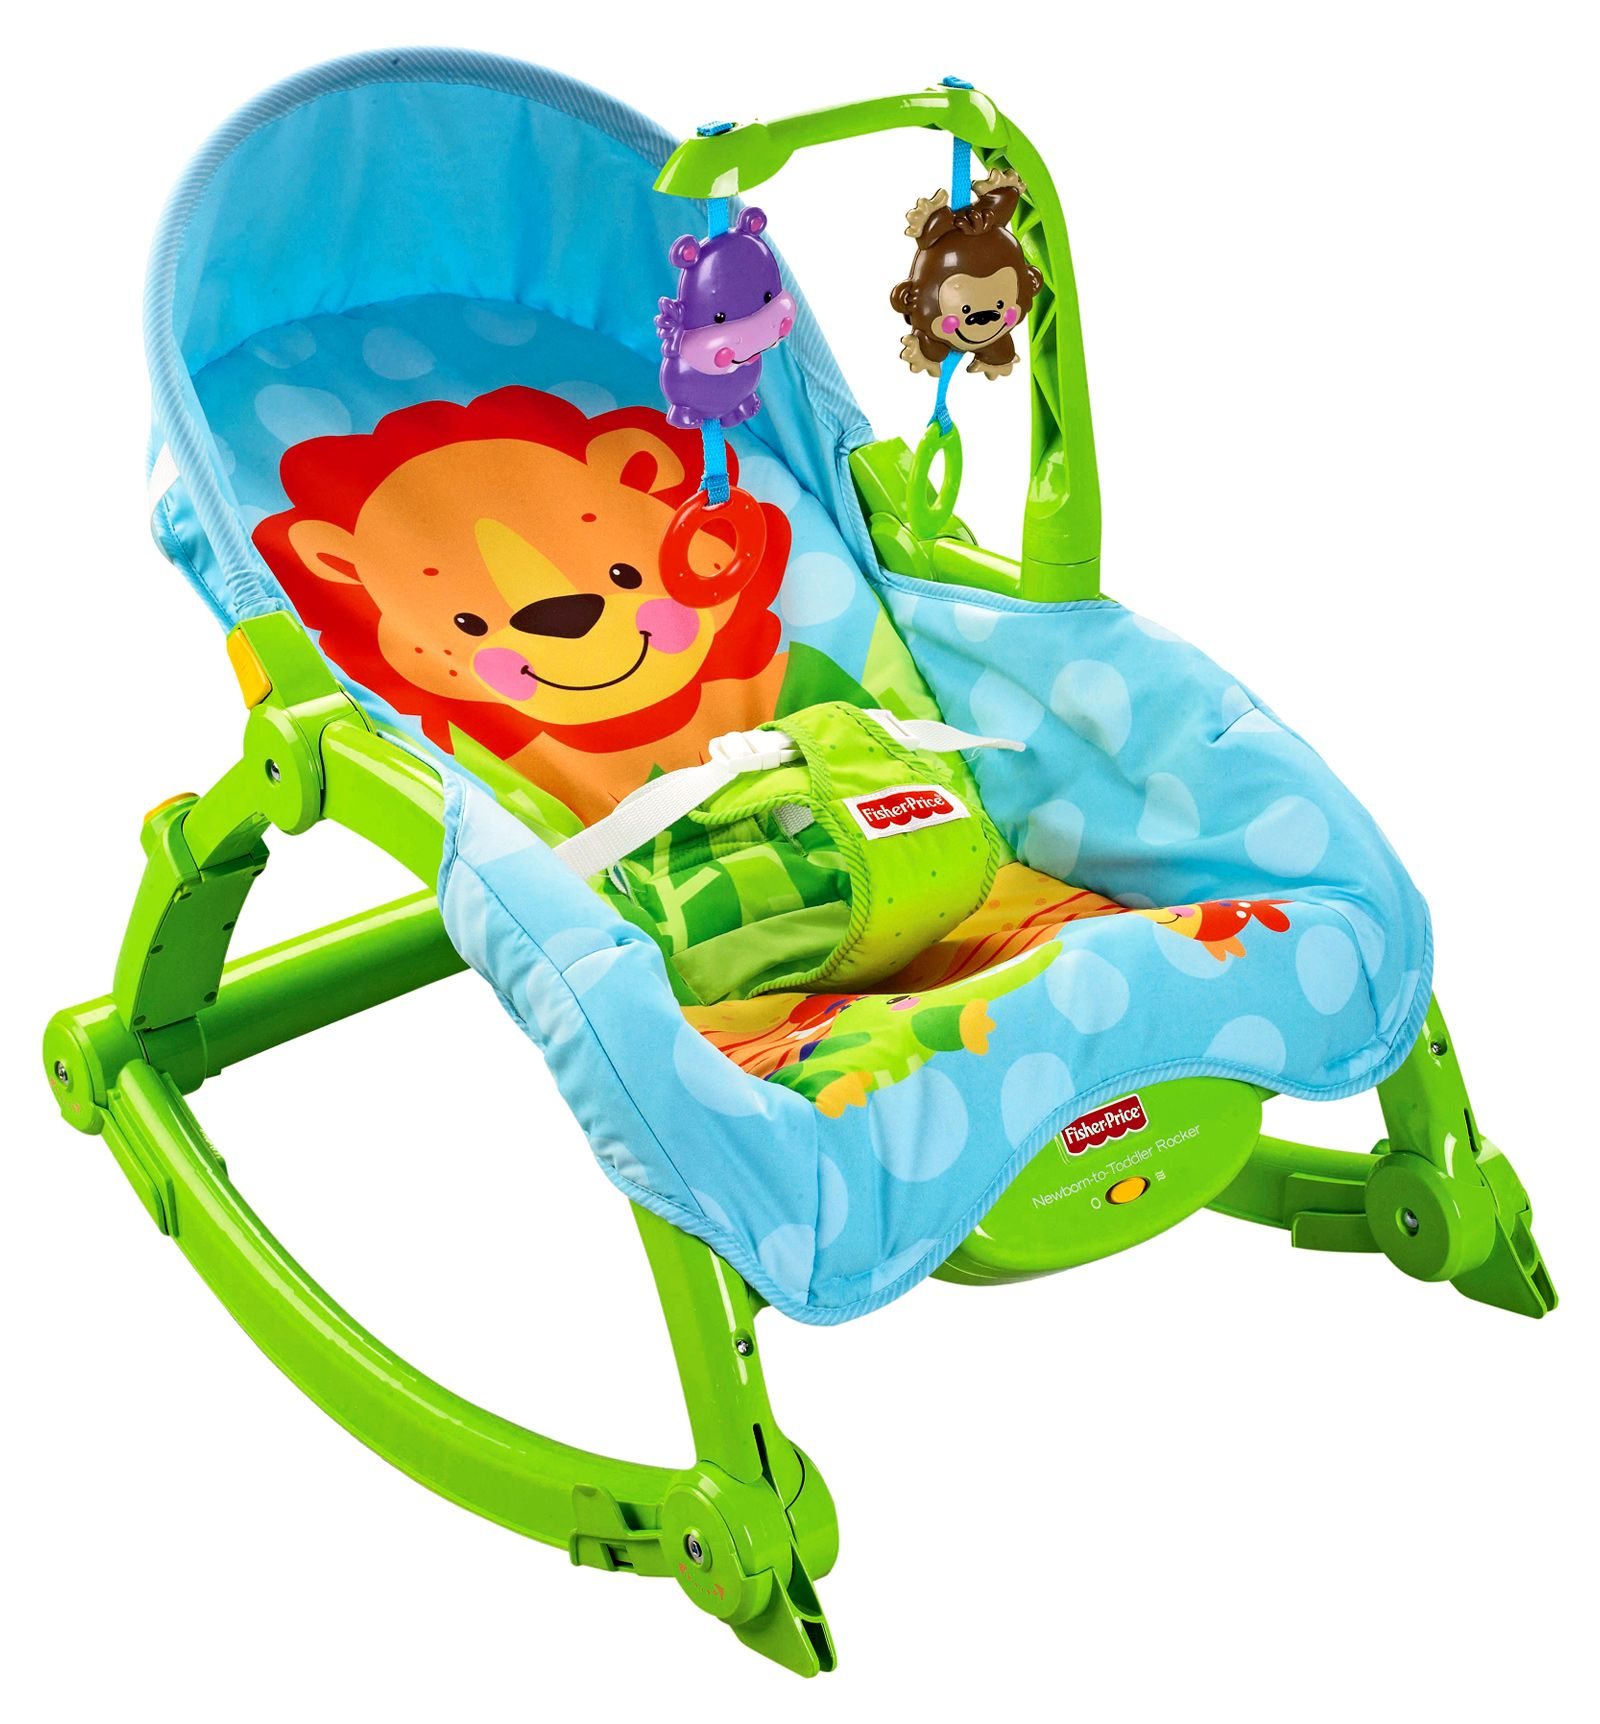 Fisher price precious planet newborn to toddler portable rocker it starts out as an infant seat or rocker with a low profile frame very appropriate for